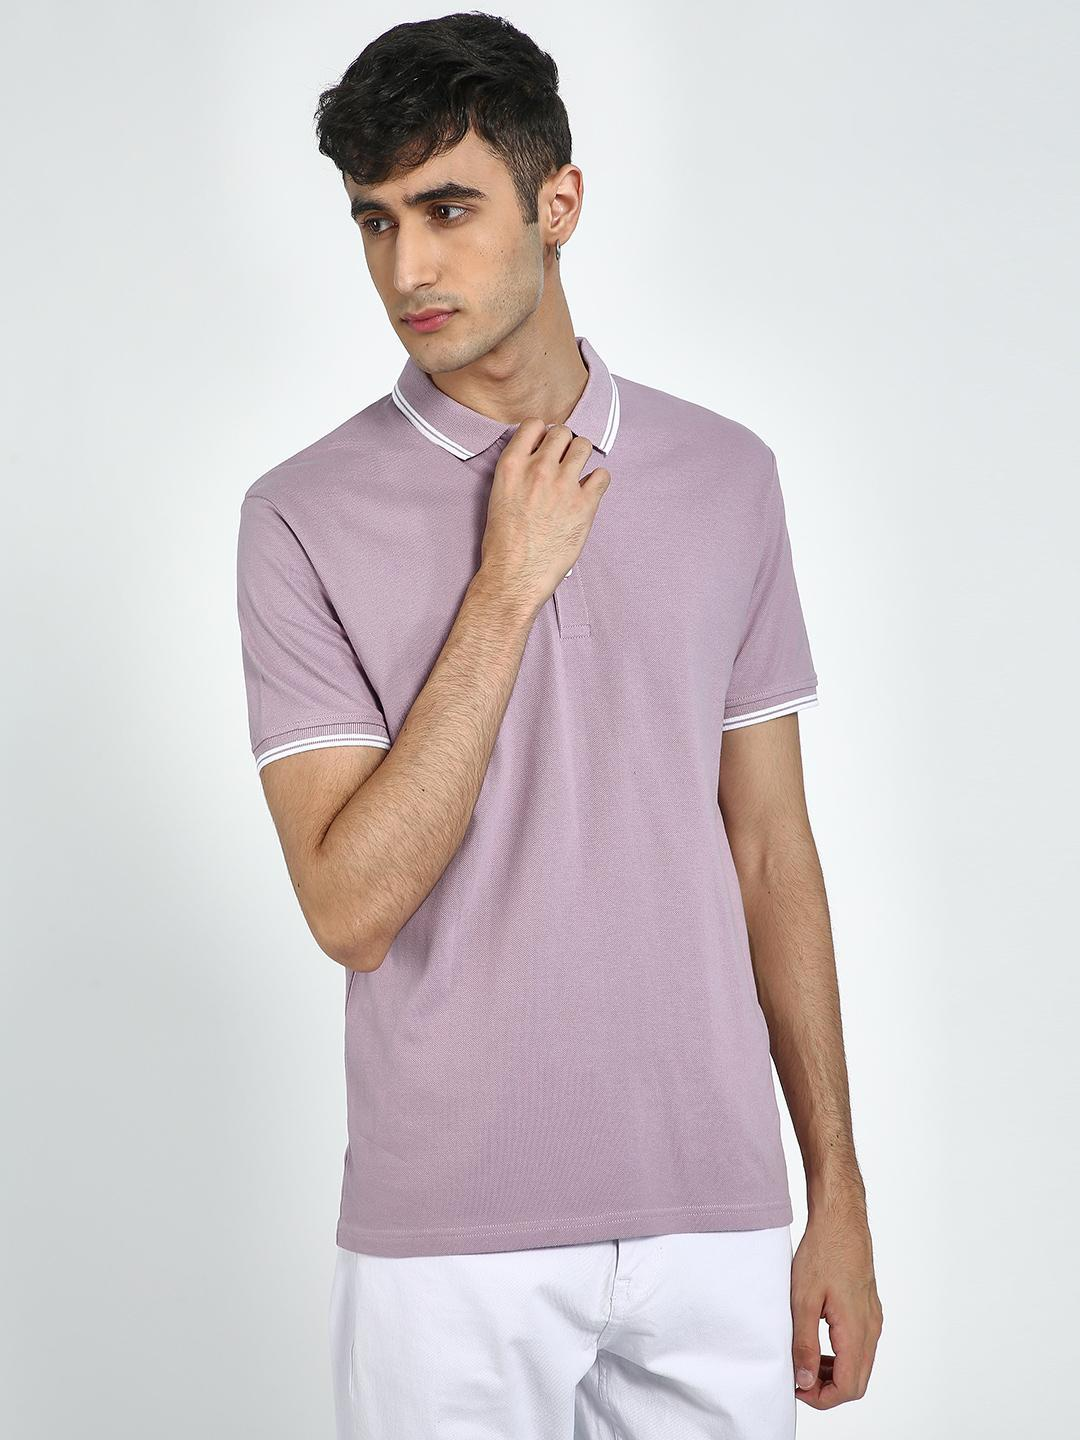 Blue Saint Purple Tipped Collar Polo Shirt 1